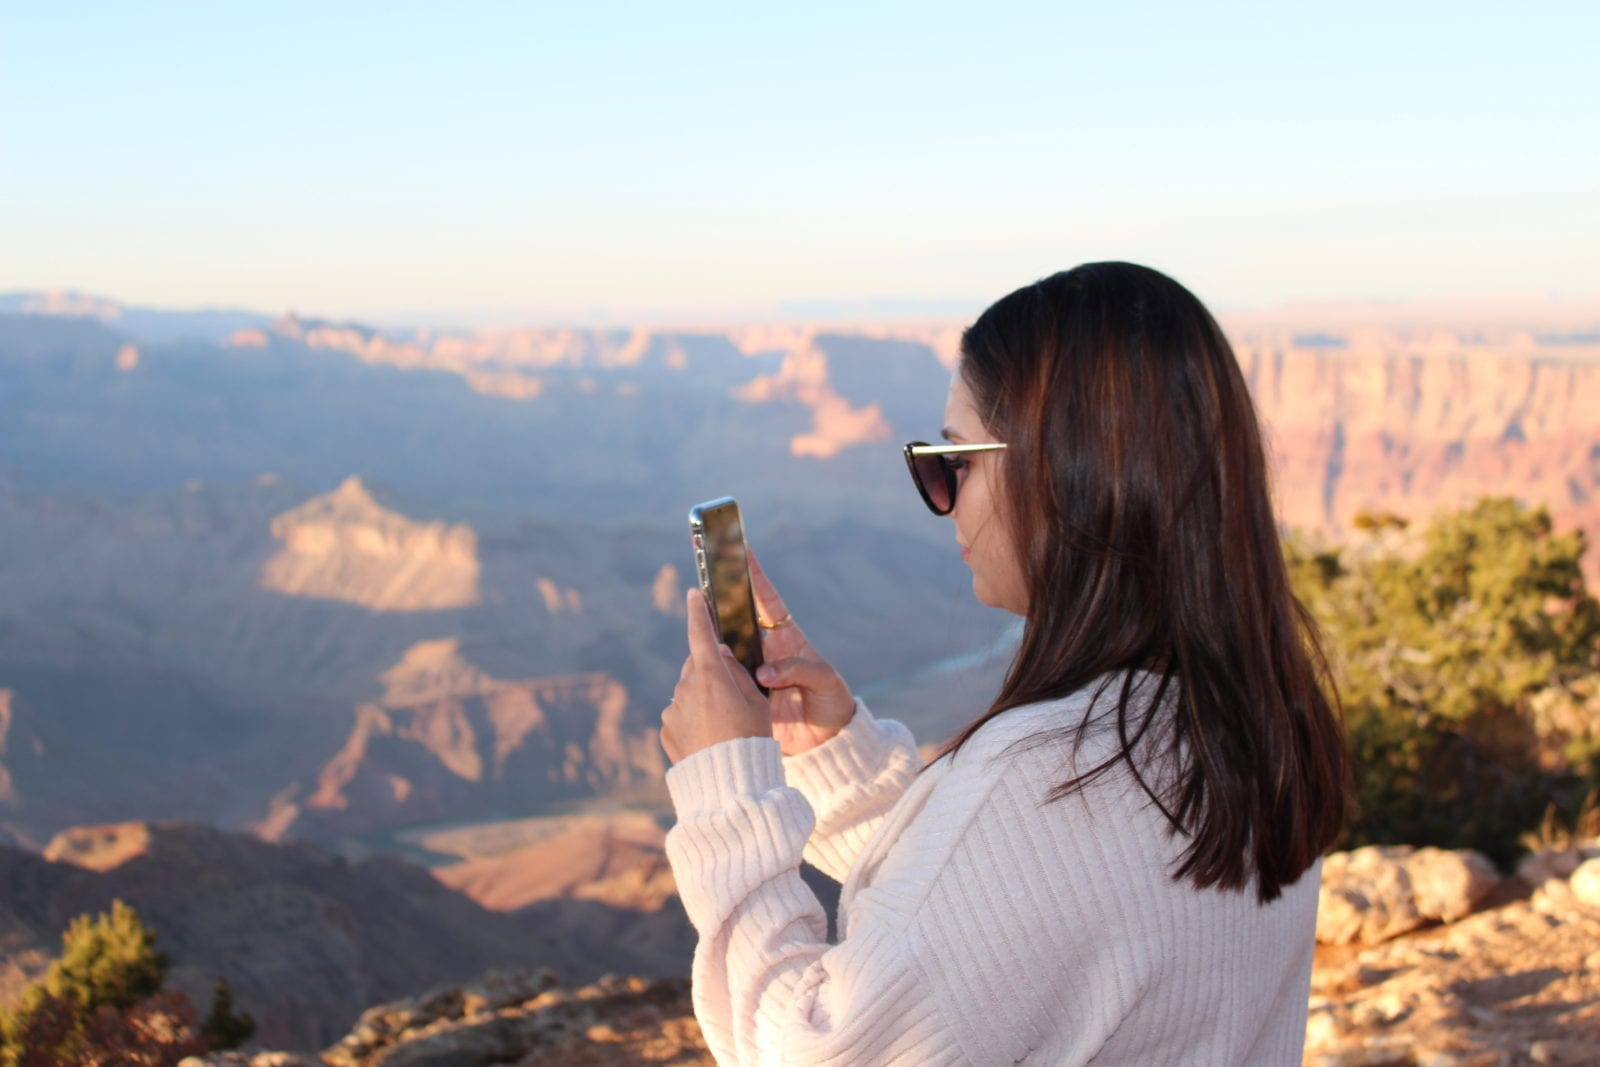 In this photo, Adaleta (aka adaatude online) is holding her phone and capturing video content of the Grand Canyon.